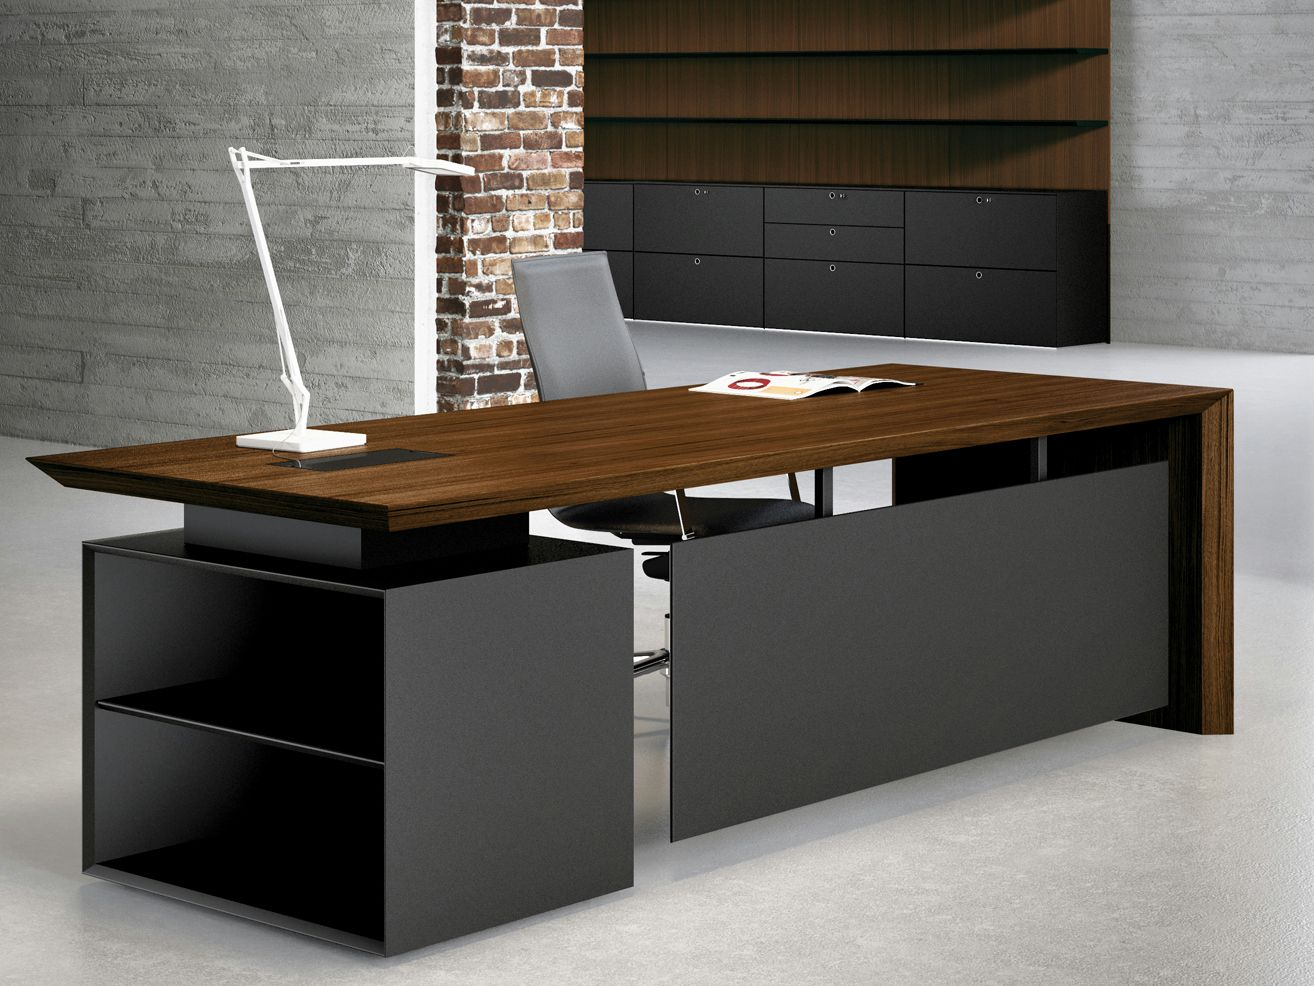 Multipliceo Office Desk By Fantoni Office Desk Designs Office Table Design Modern Office Design